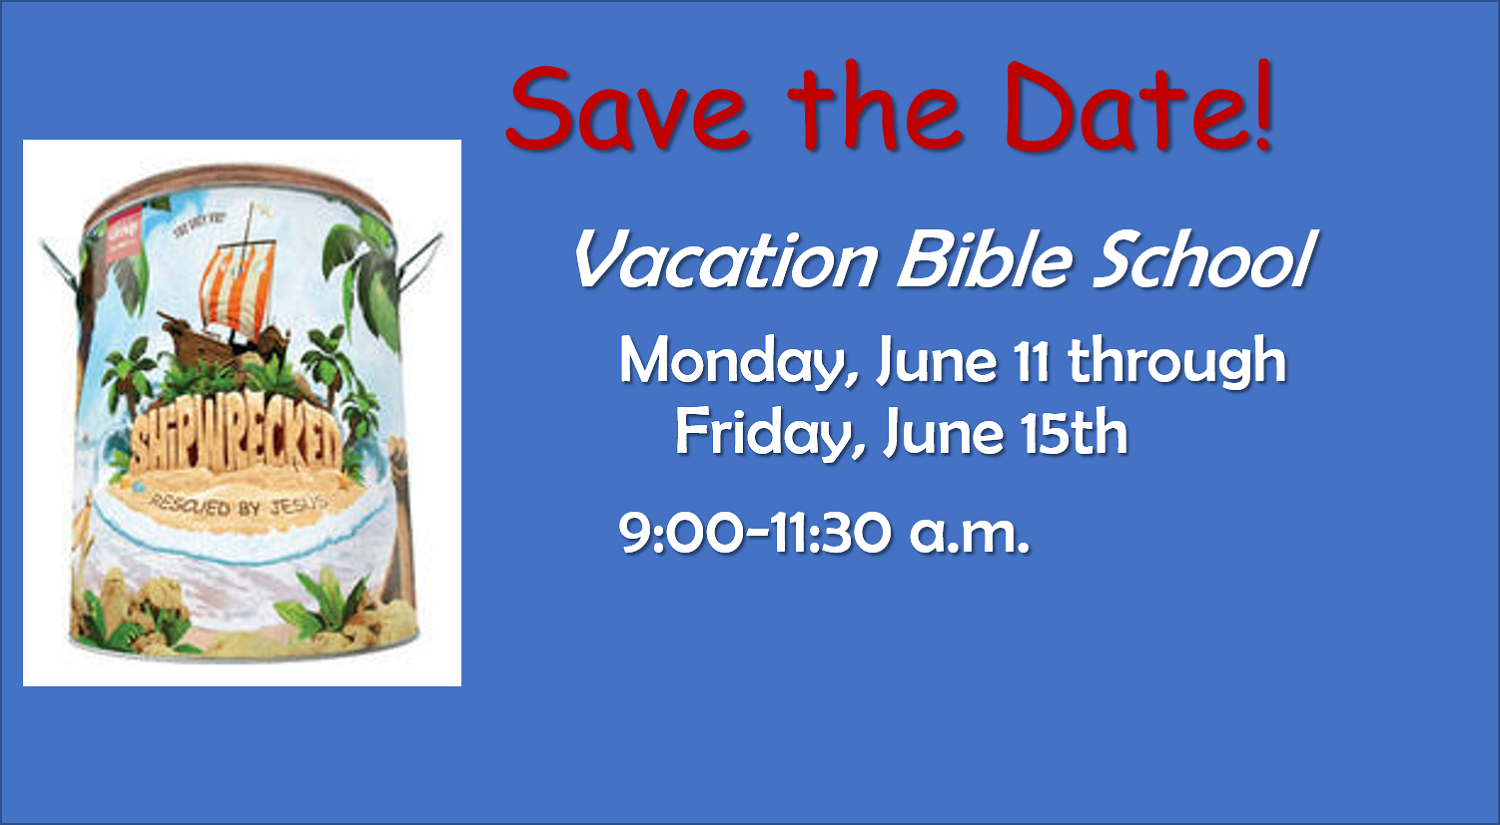 VBS 2018 - Save the Date!